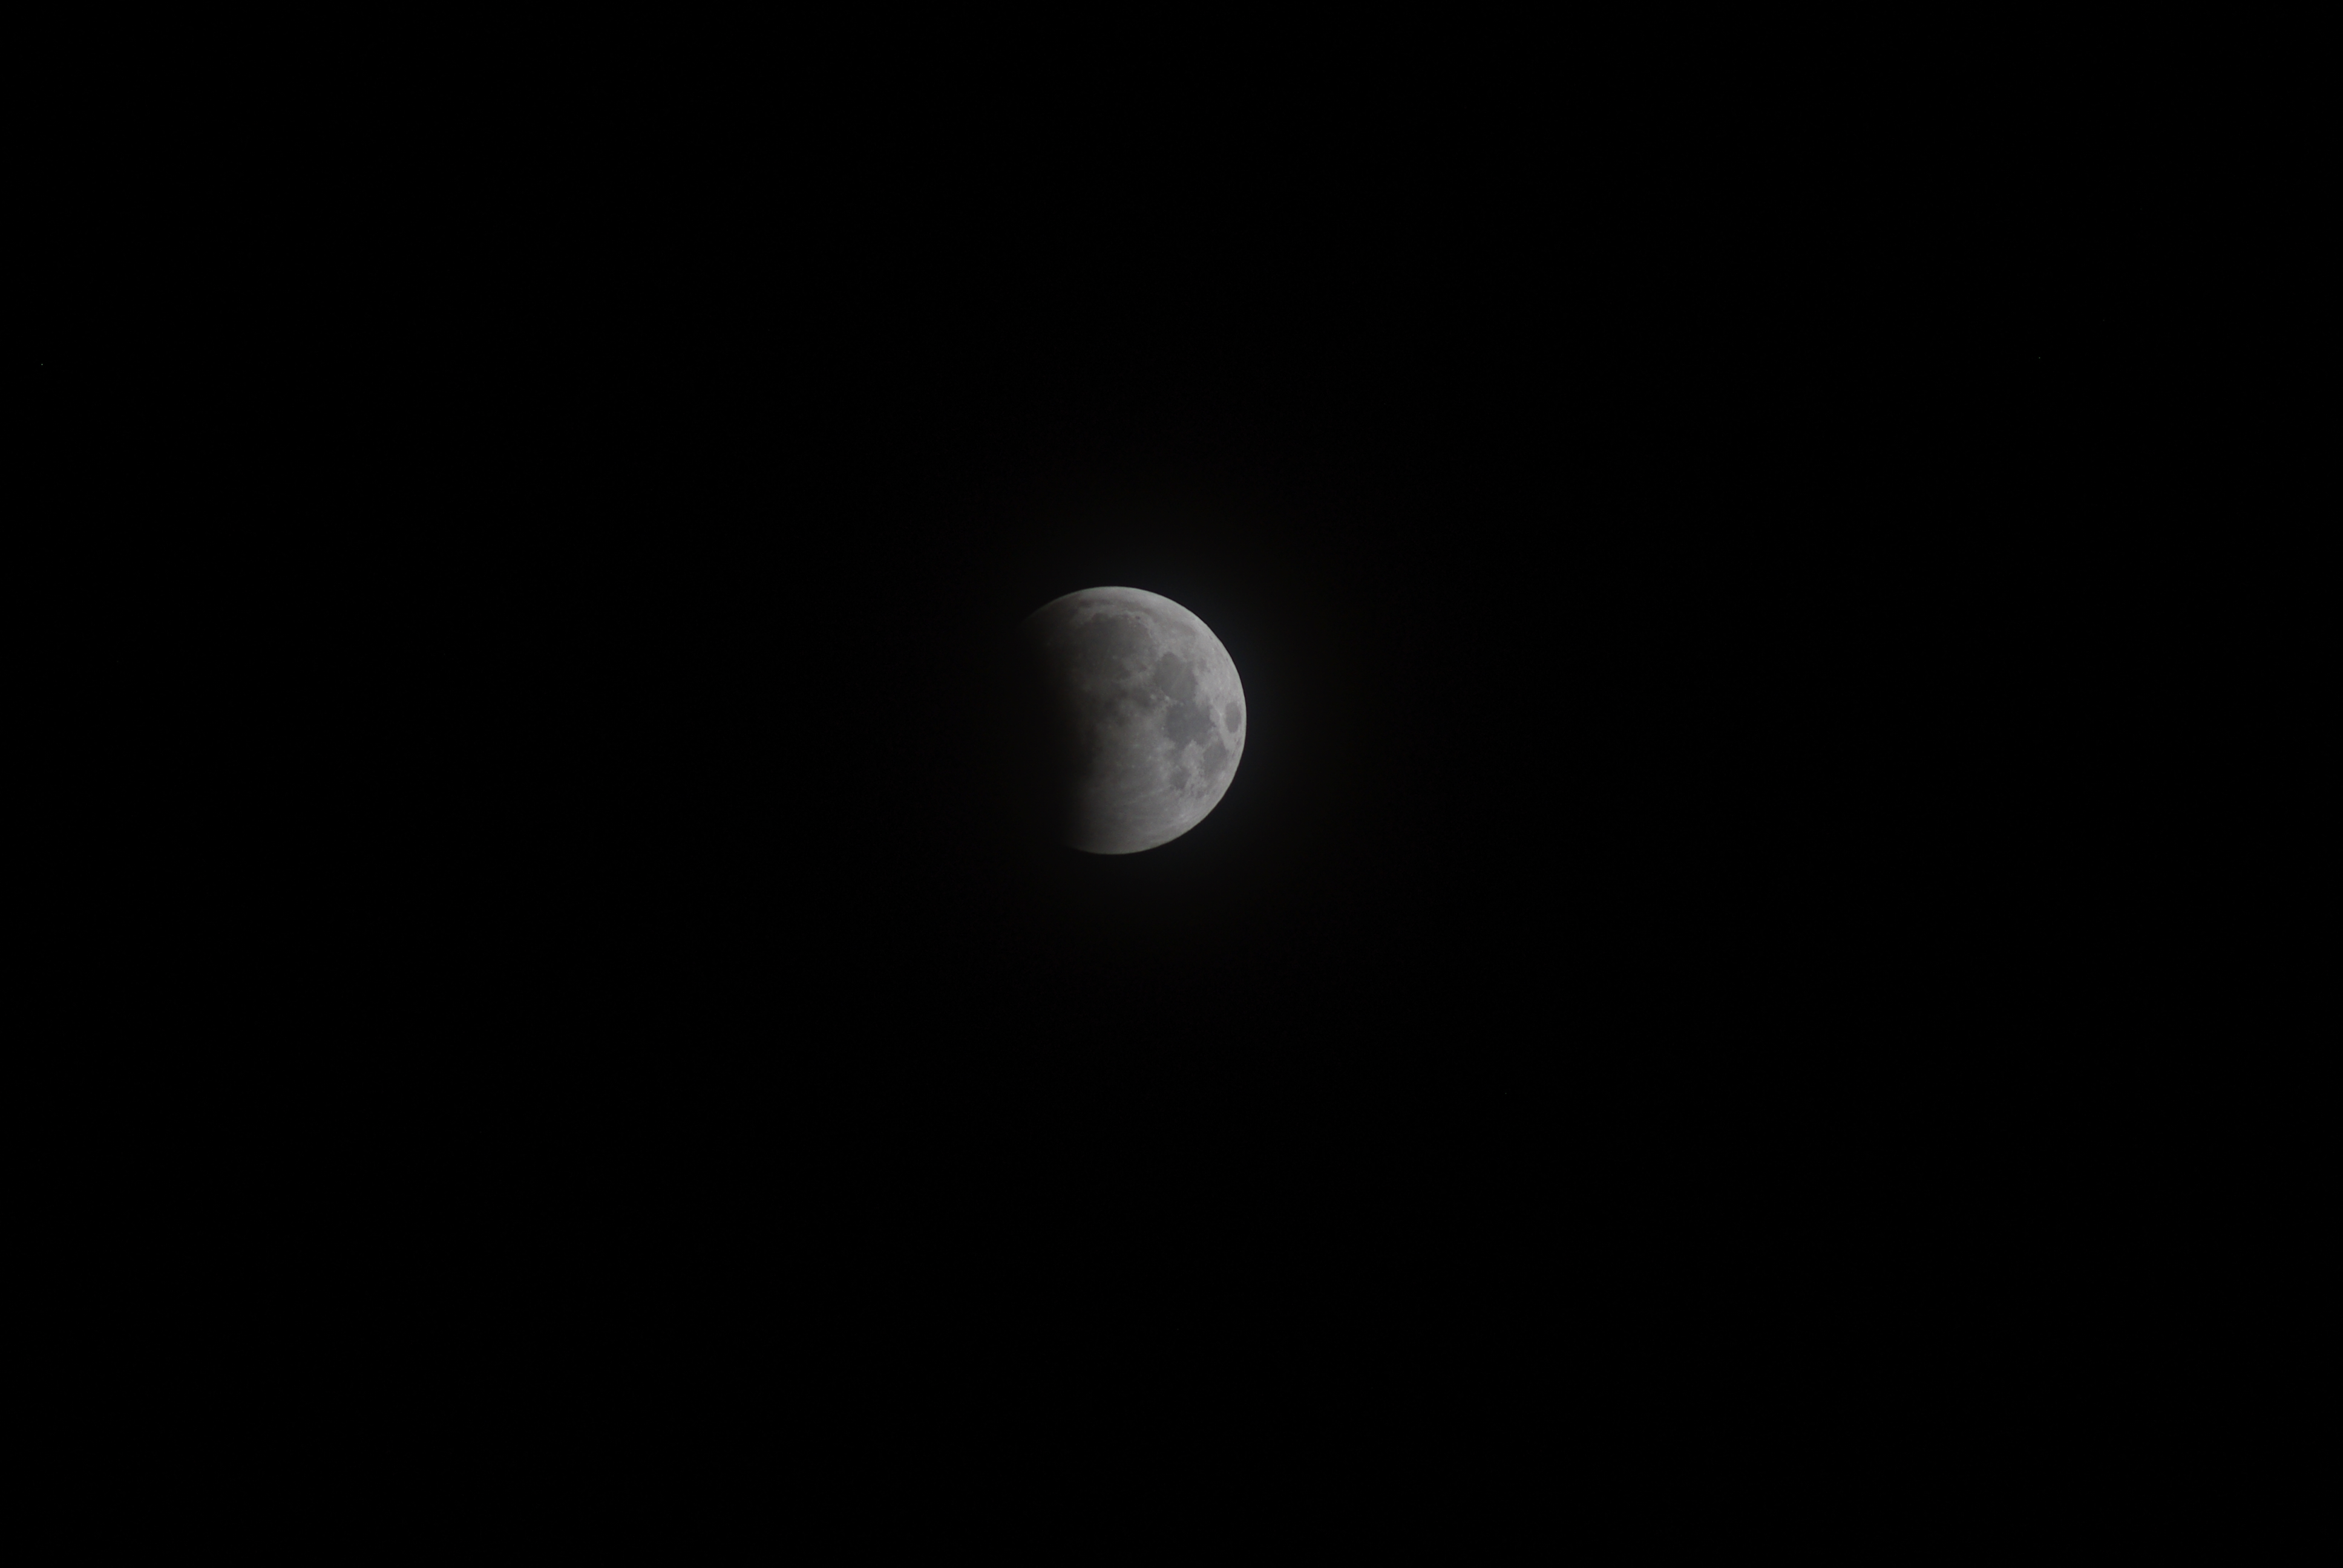 kuronosan general fuck cold tonight online pics camera images justice stream nights clearest starts awake eclipse 1220 ended crazy lunar single moon shower meteor heard